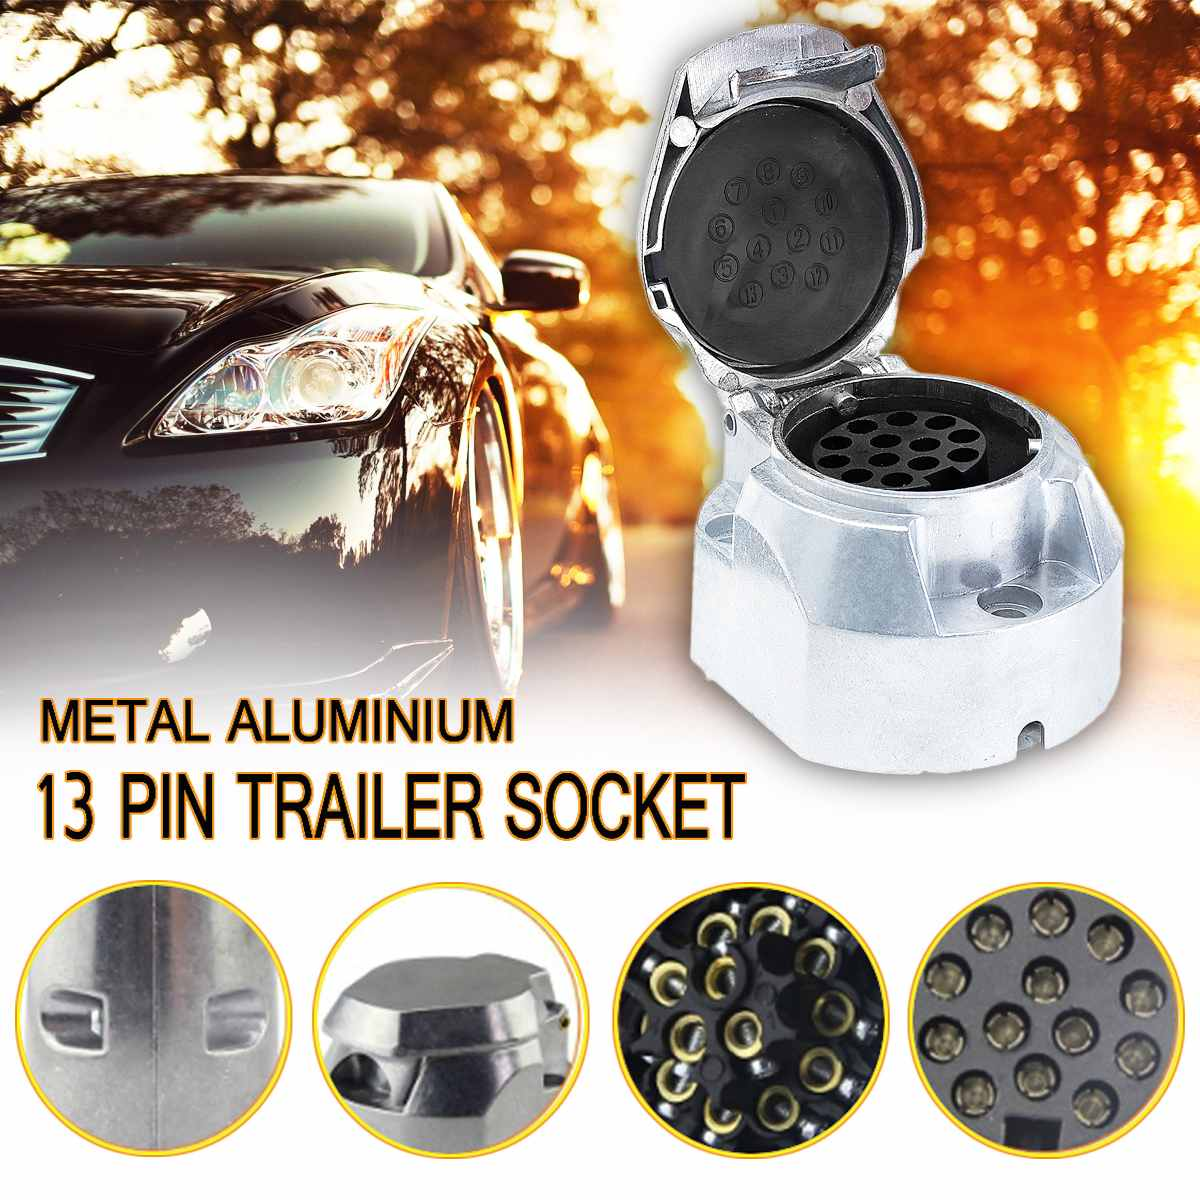 13 Pin European Standard Trailer Socket Aluminum Trailer Socket 12V Towbar Towing Socket For Car Trailer Ship RV